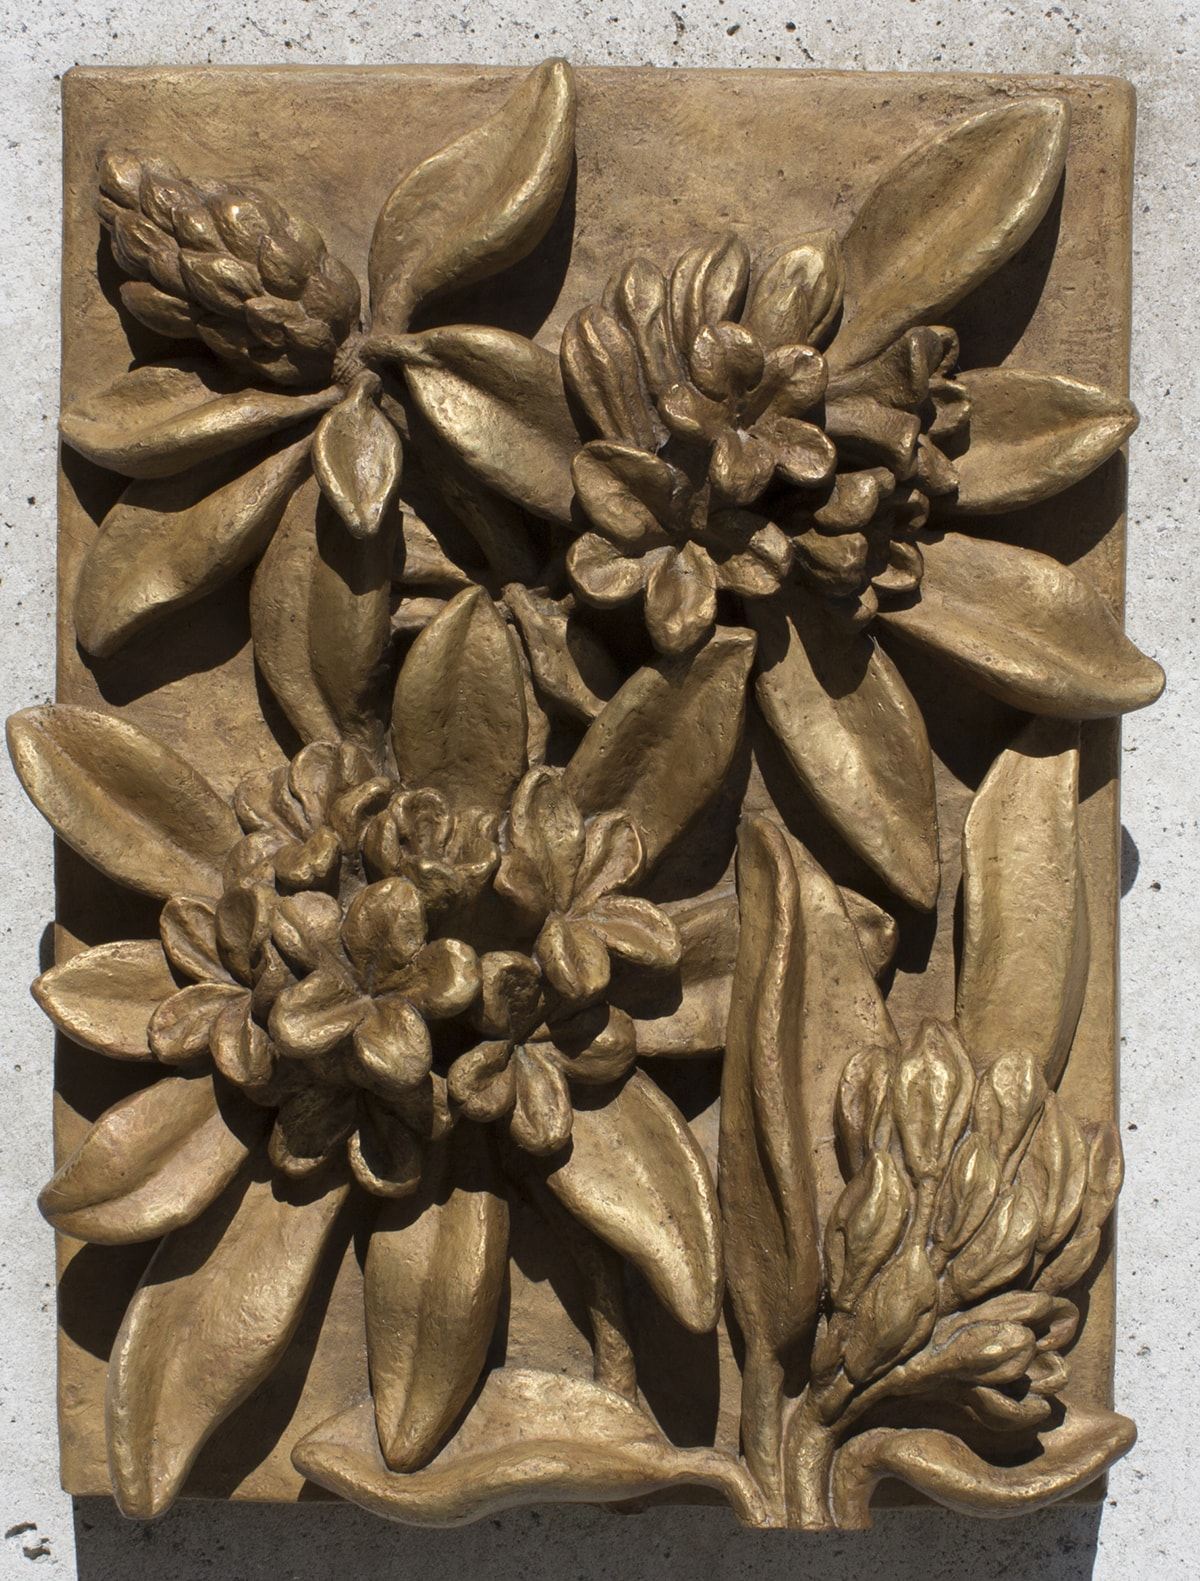 """Image description: """"Rhododendrons."""" Marie Louise Feldenheimer. 1933. Bronze. 19 1/2 x 15 1/2 x 6 inches. A rectangular, monochromatic, bronze plaque with four rhododendron flowers in relief. A tight bud appears in the upper left corner, fringed with leaves and pointing toward the corner. Two, fully open flower clusters form a diagonal from the lower left corner to the upper right corner, each framed by large, smooth leaves. In the lower right corner, a partially open flower is seen from the side, facing toward the edge, the edges of its leaves curve gently. Strong sunlight on the relief creates deep shadows and glossy areas, suggesting the shine of actual rhododendron leaves."""